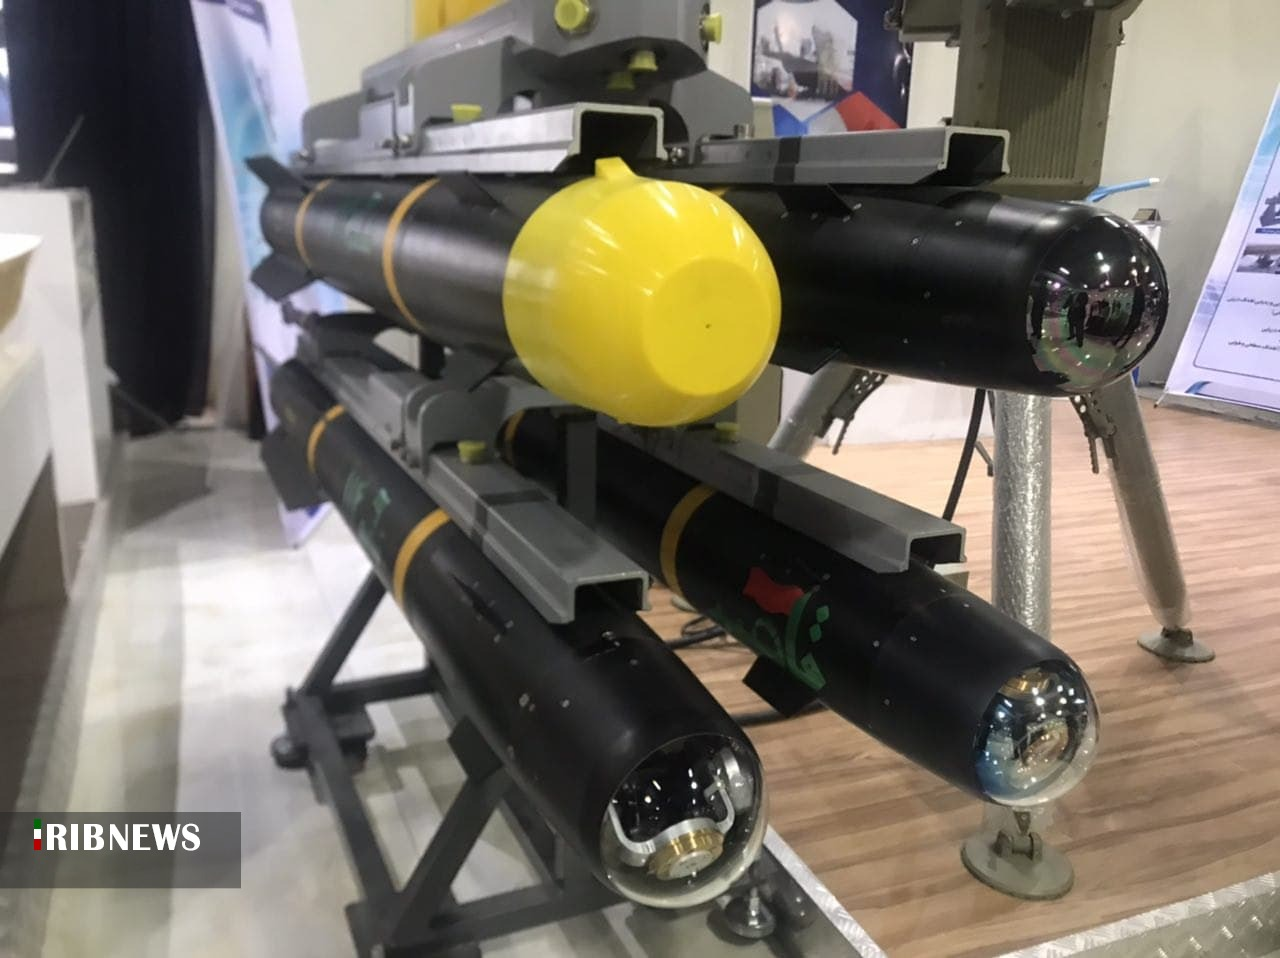 Iran Showcases Almost Exact Copy Of US-Made AGM-41 Hellfire Missile